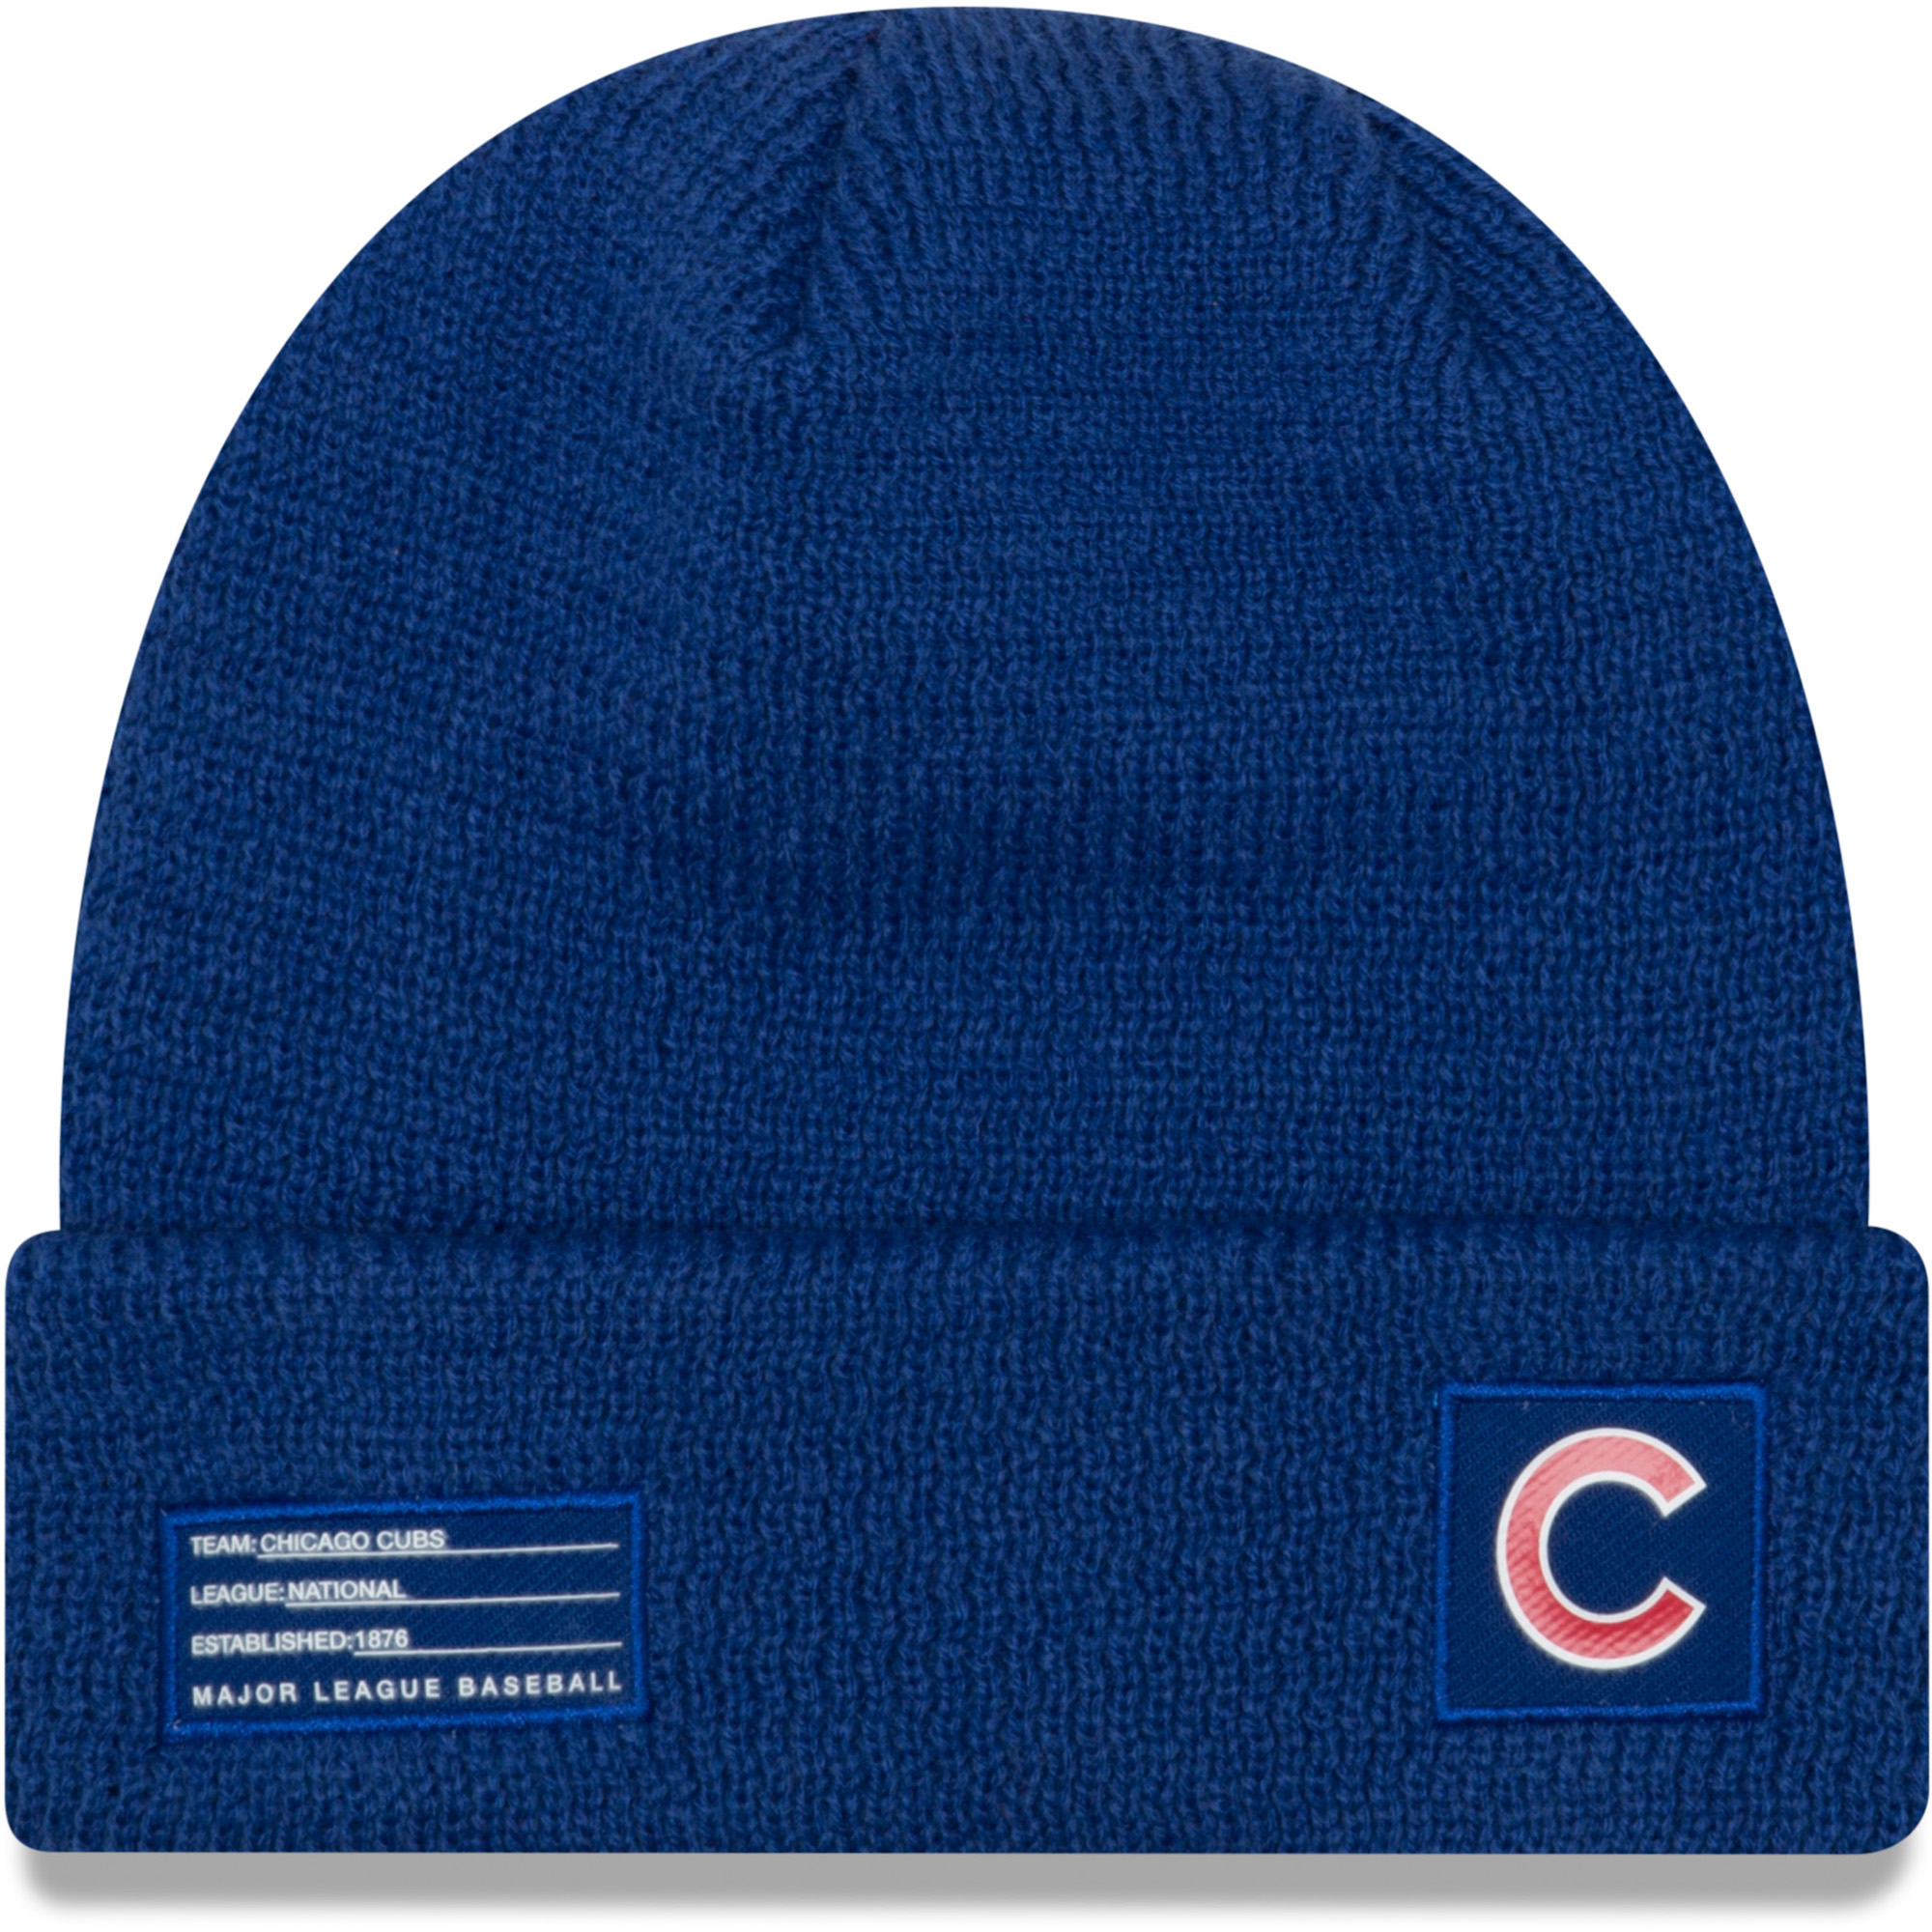 Chicago Cubs New Era Youth On-Field Sport Cuffed Knit Hat - Royal - OSFA